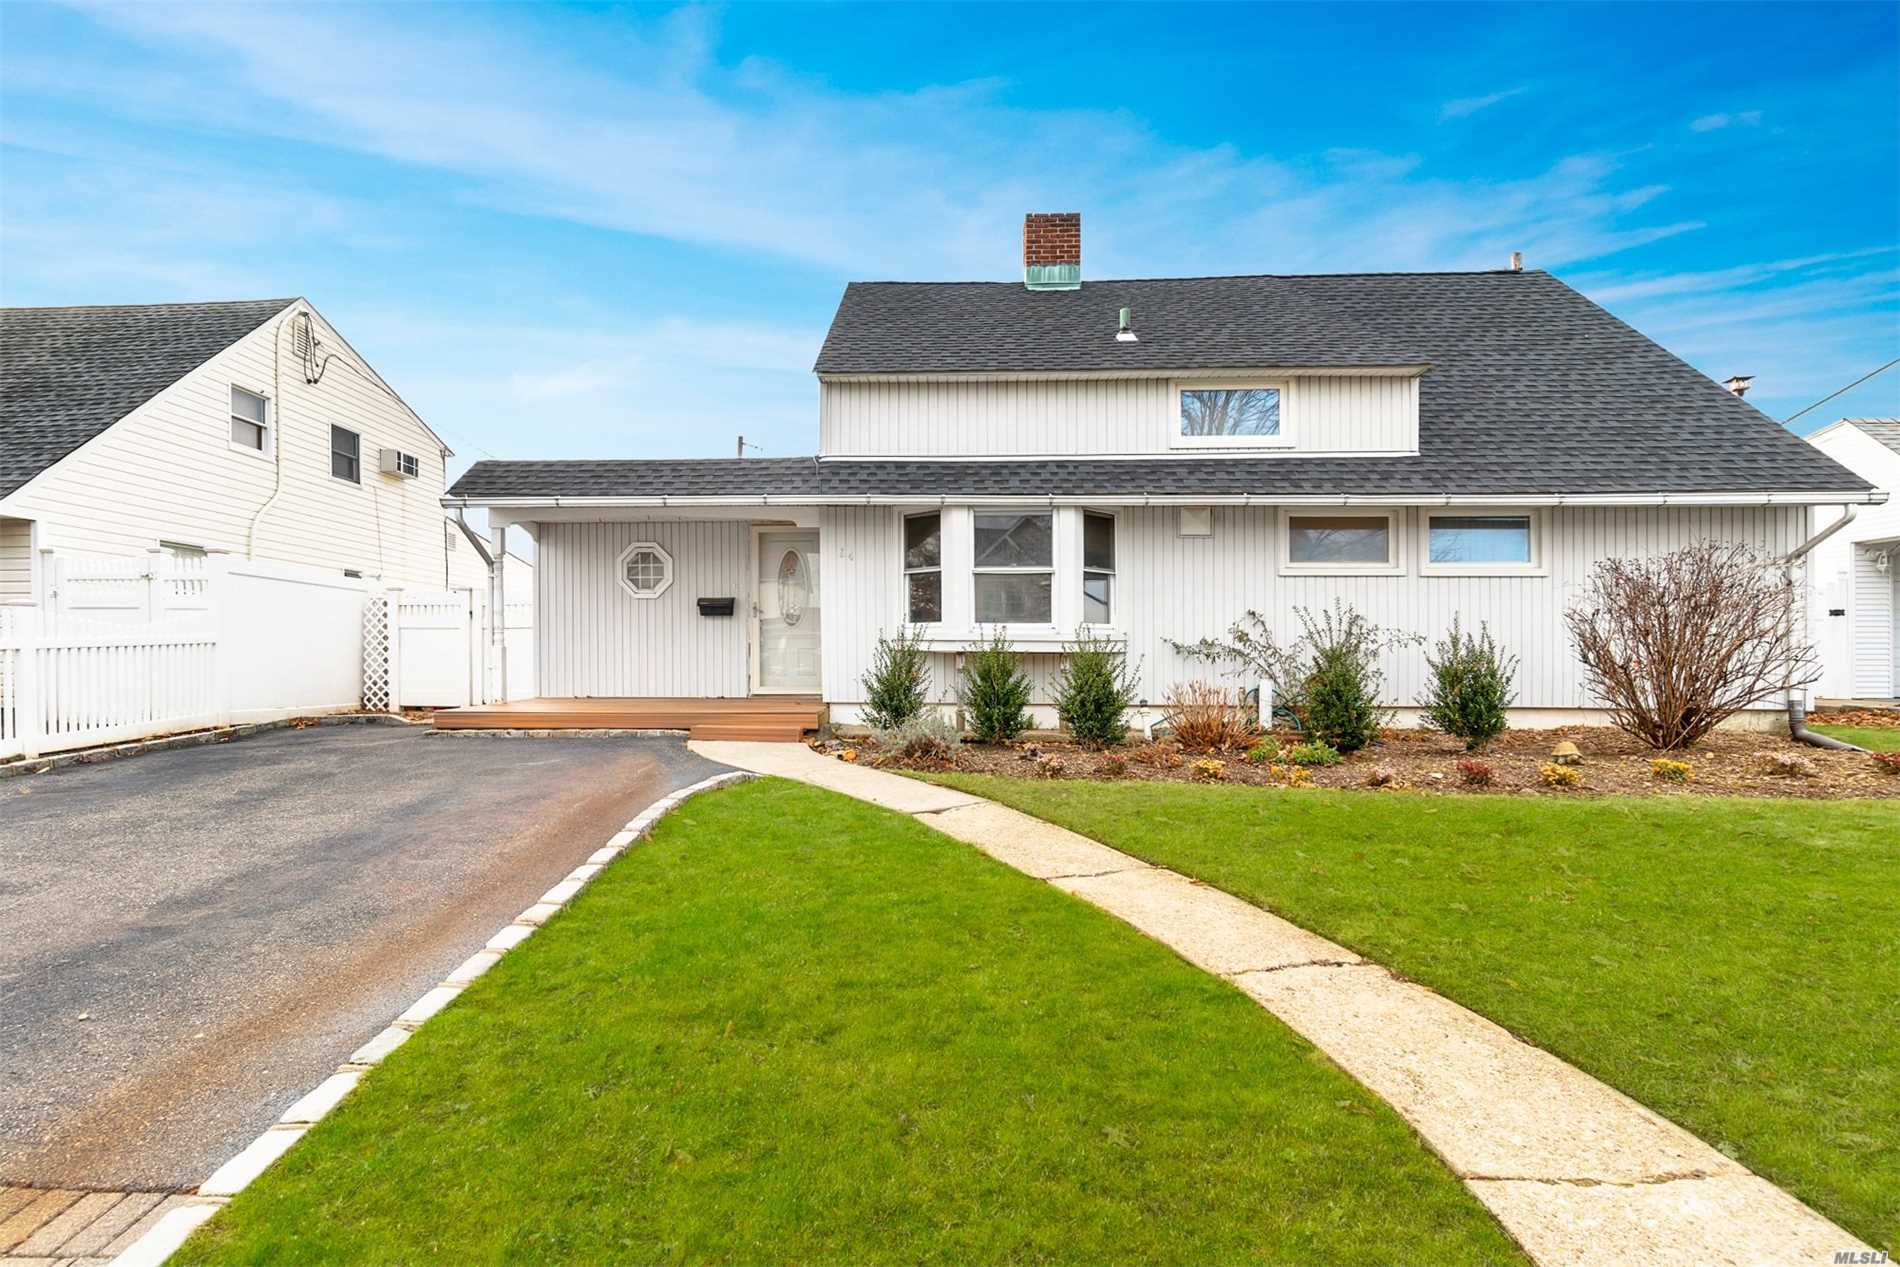 Location! Location! Location!  Lovely Cape Situated On A Perfect Mid-Block Location In The Desirable Area Of N. Levittown. This Warm & Inviting Home Boasts 5 Bedrooms, 1.5 Baths, Stainless Steel Appliances With Granite Counters, Dual Fireplace, 2 Skylights, Updated Windows, Led Lighting, New Roof, 2 Neighbors, & A Double Driveway. Close To Major Highways, Public Transportation, Shopping, Park, & Pools. A Must See To Appreciate. Taxes Have Not Been Grieved & In The Process Of Being Greived!!!!!